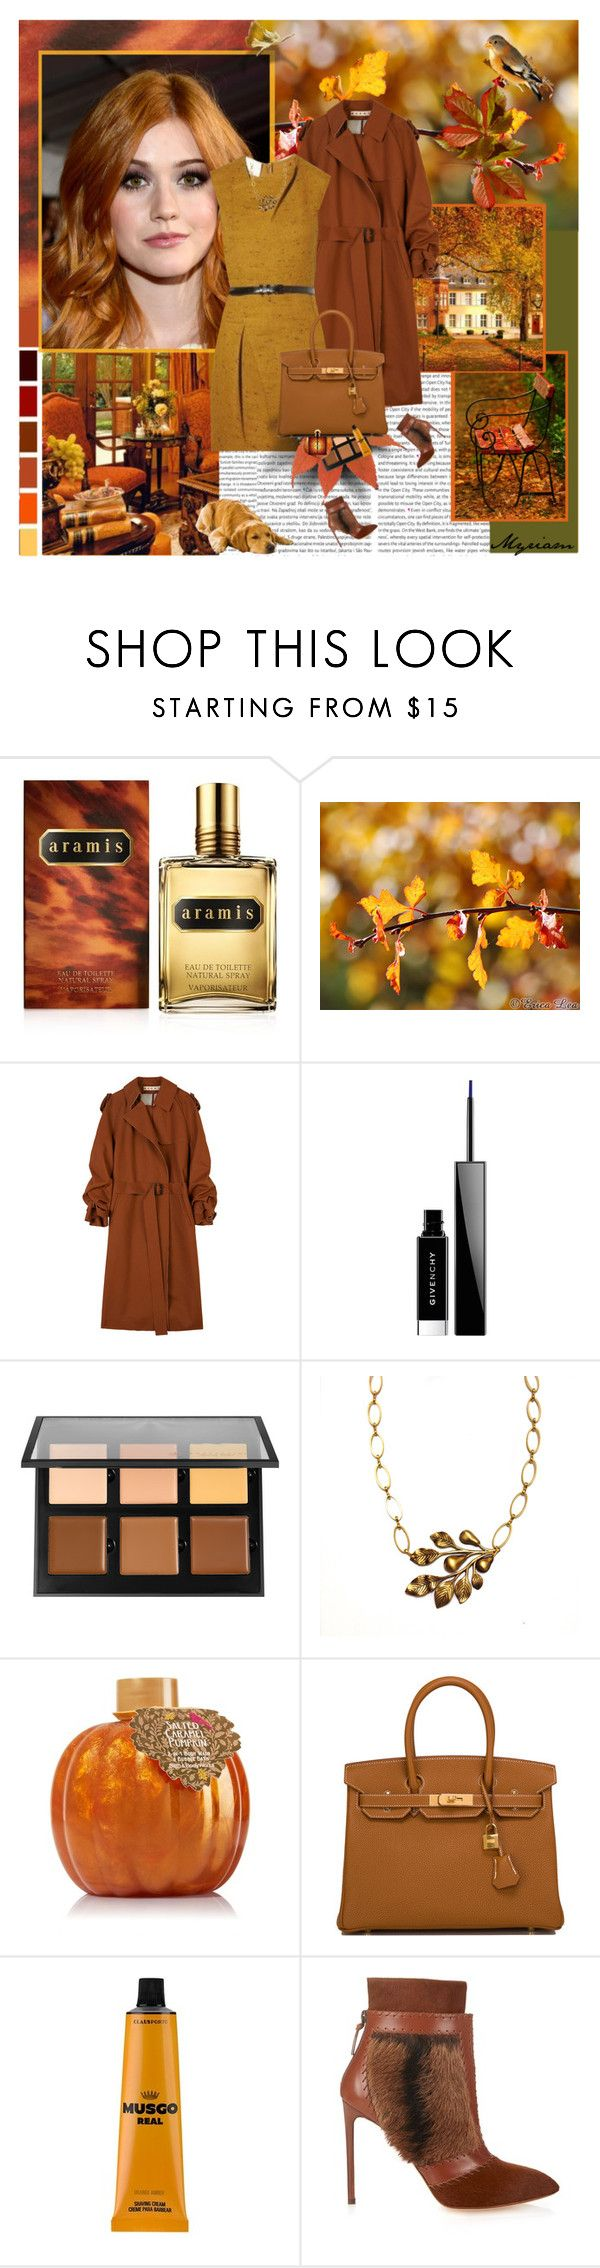 """Dressed in gold and Carmine. the autumn came"" by lovemeforthelife-myriam ❤ liked on Polyvore featuring Oris, Aramis, Marni, Givenchy, Anastasia Beverly Hills, Hermès, The Real Shaving Company, Francesco Russo and Yves Saint Laurent"